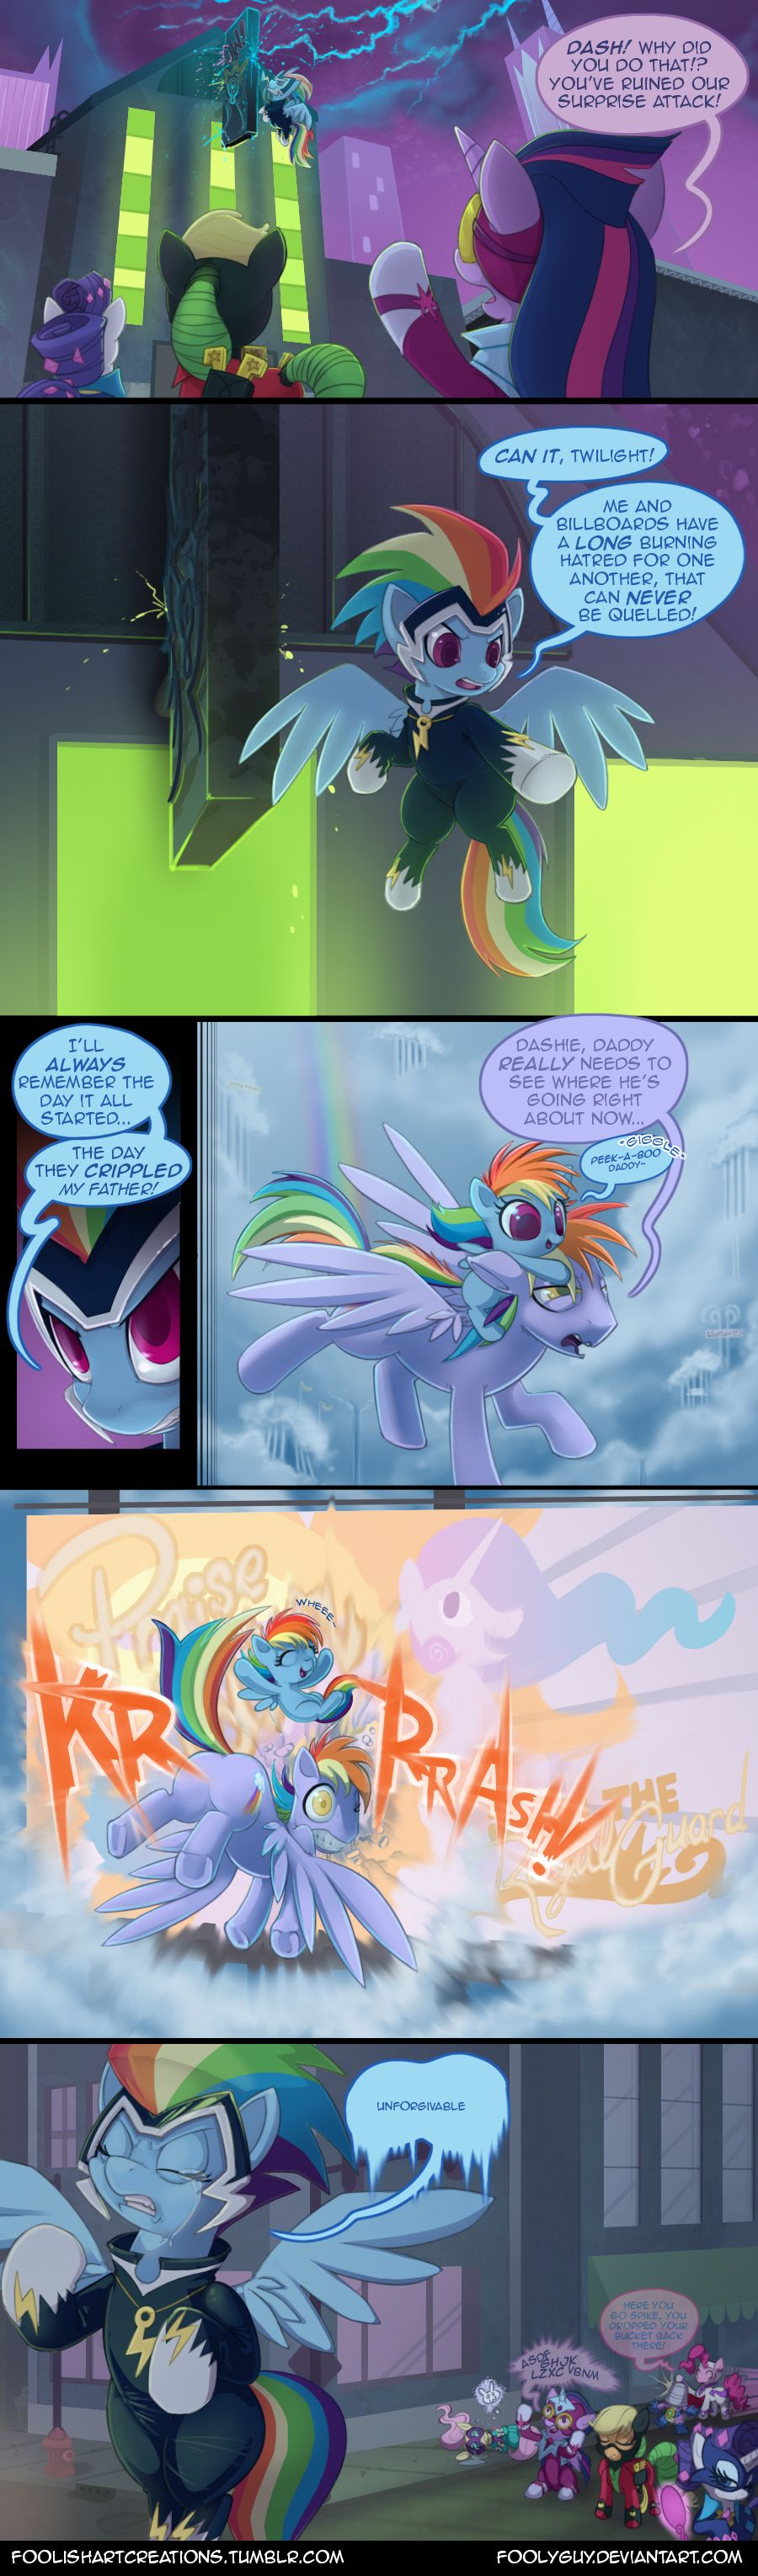 Power Ponies Origin Story By Foolyguy On Deviantart My Little Pony Pictures Pony Mlp My Little Pony